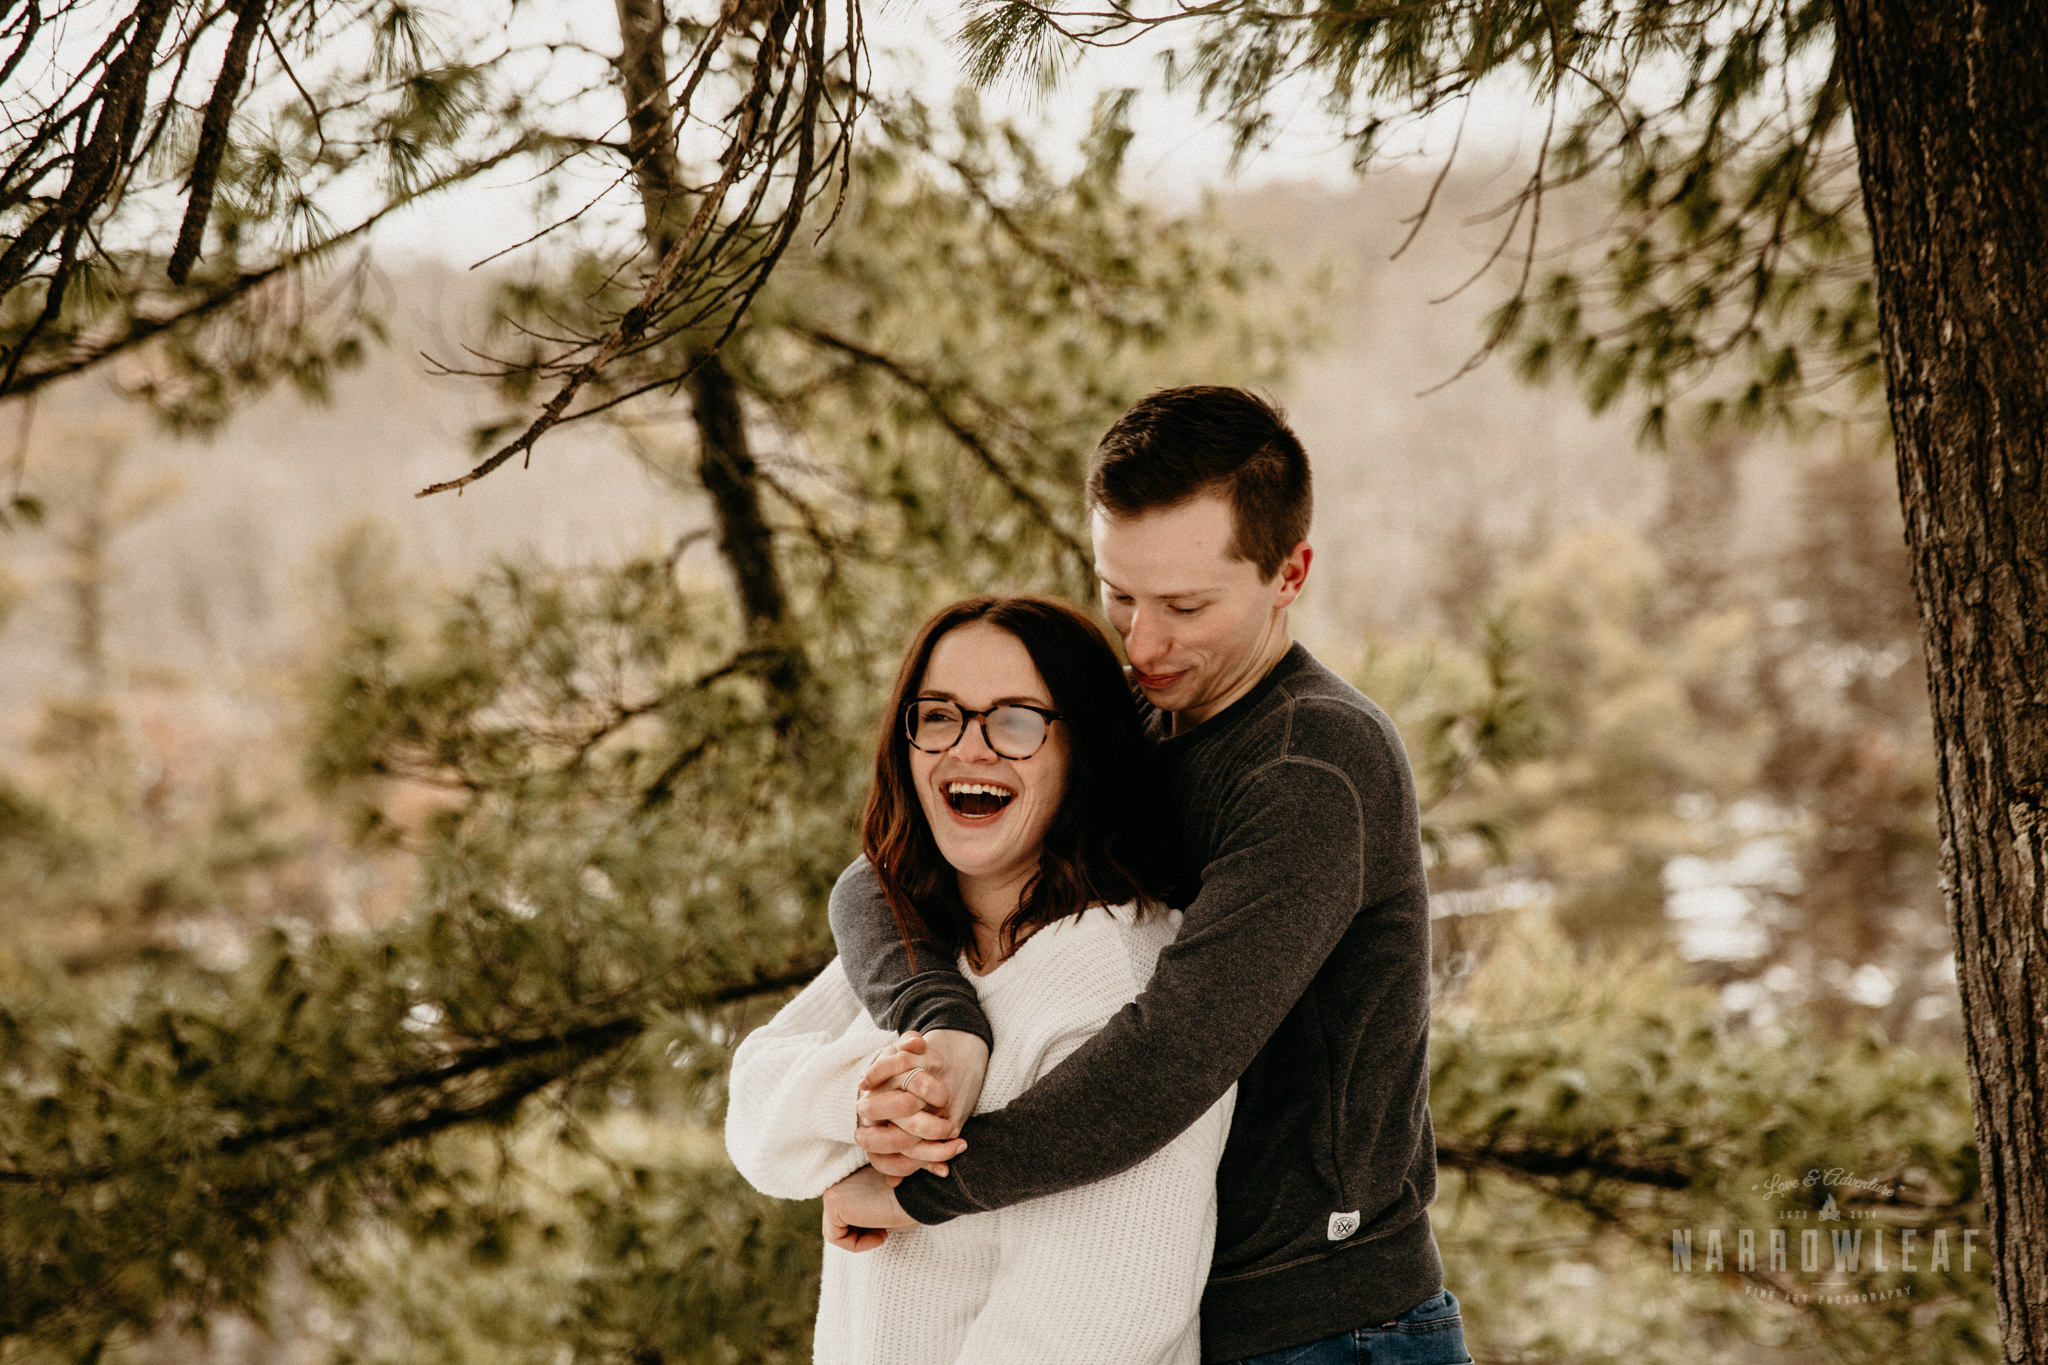 wisconsin-winter-engagement-photos-Narrowleaf_Love_and_Adventure_Photography-7786.jpg